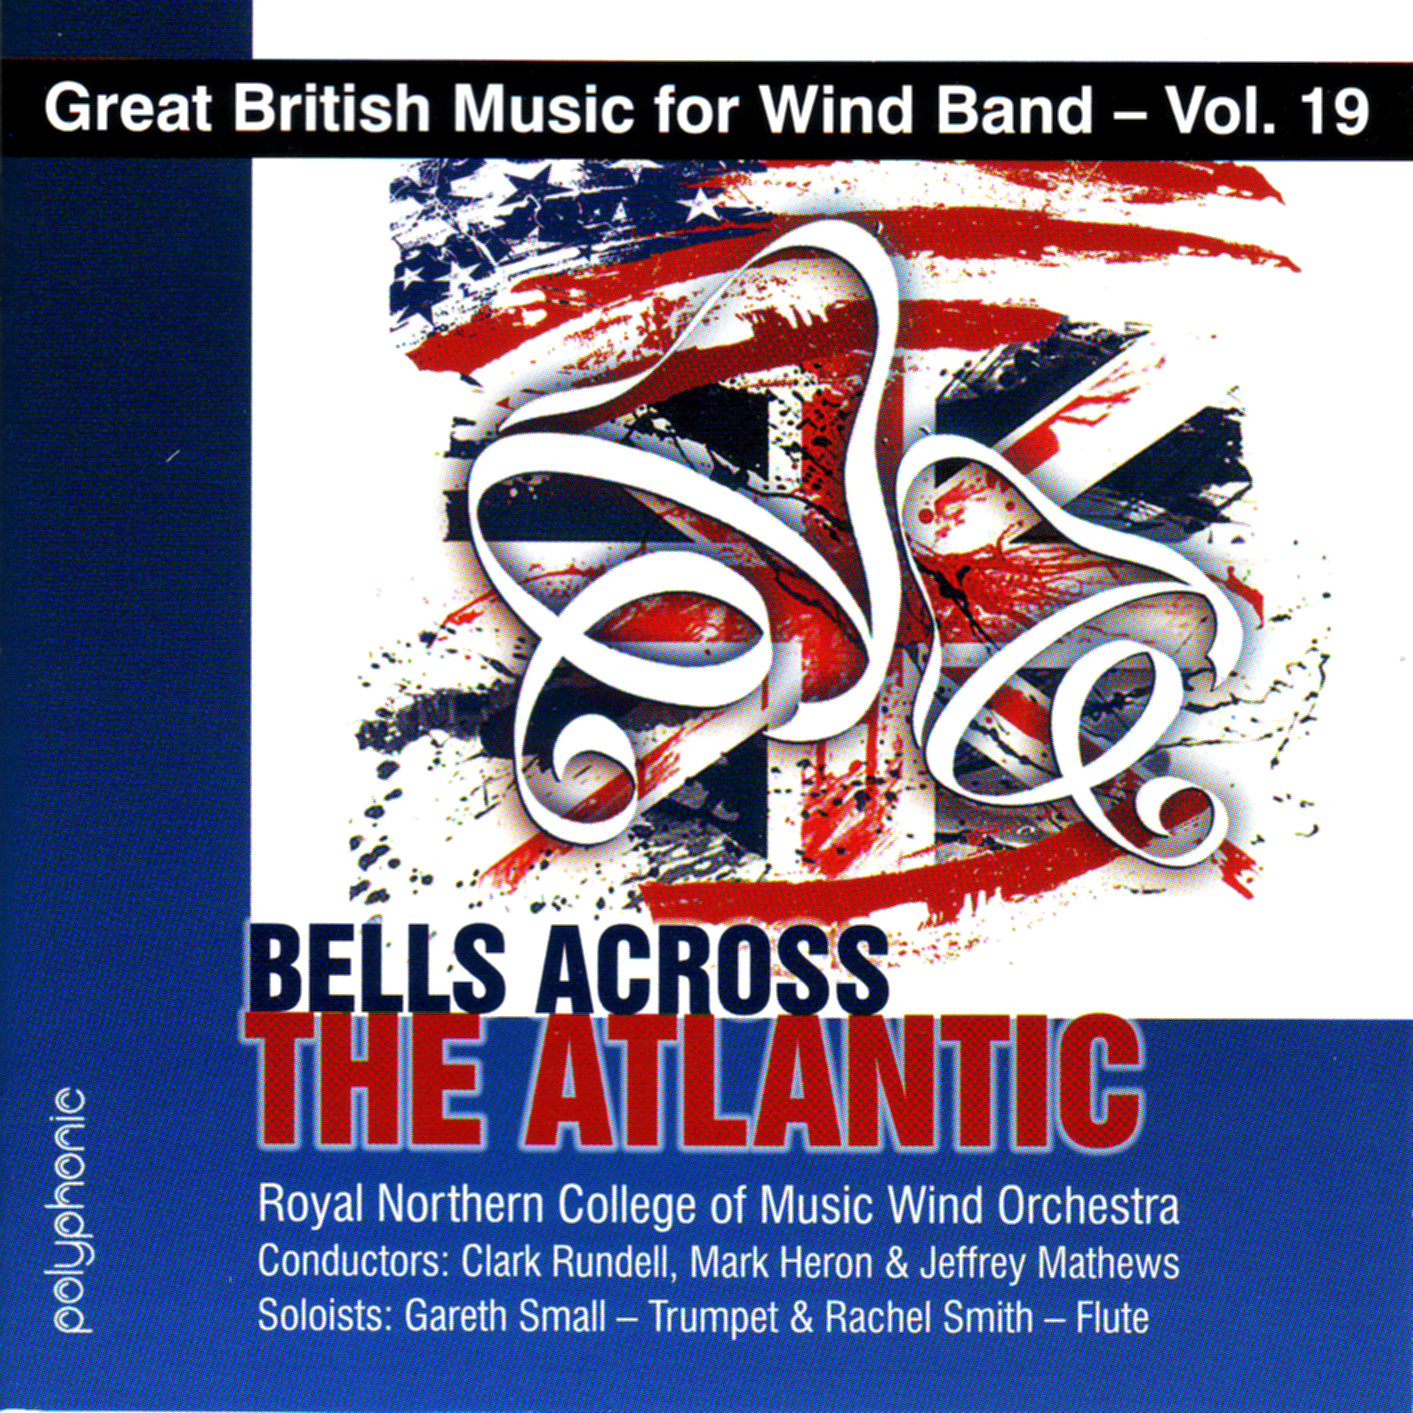 Bells Across The Atlantic